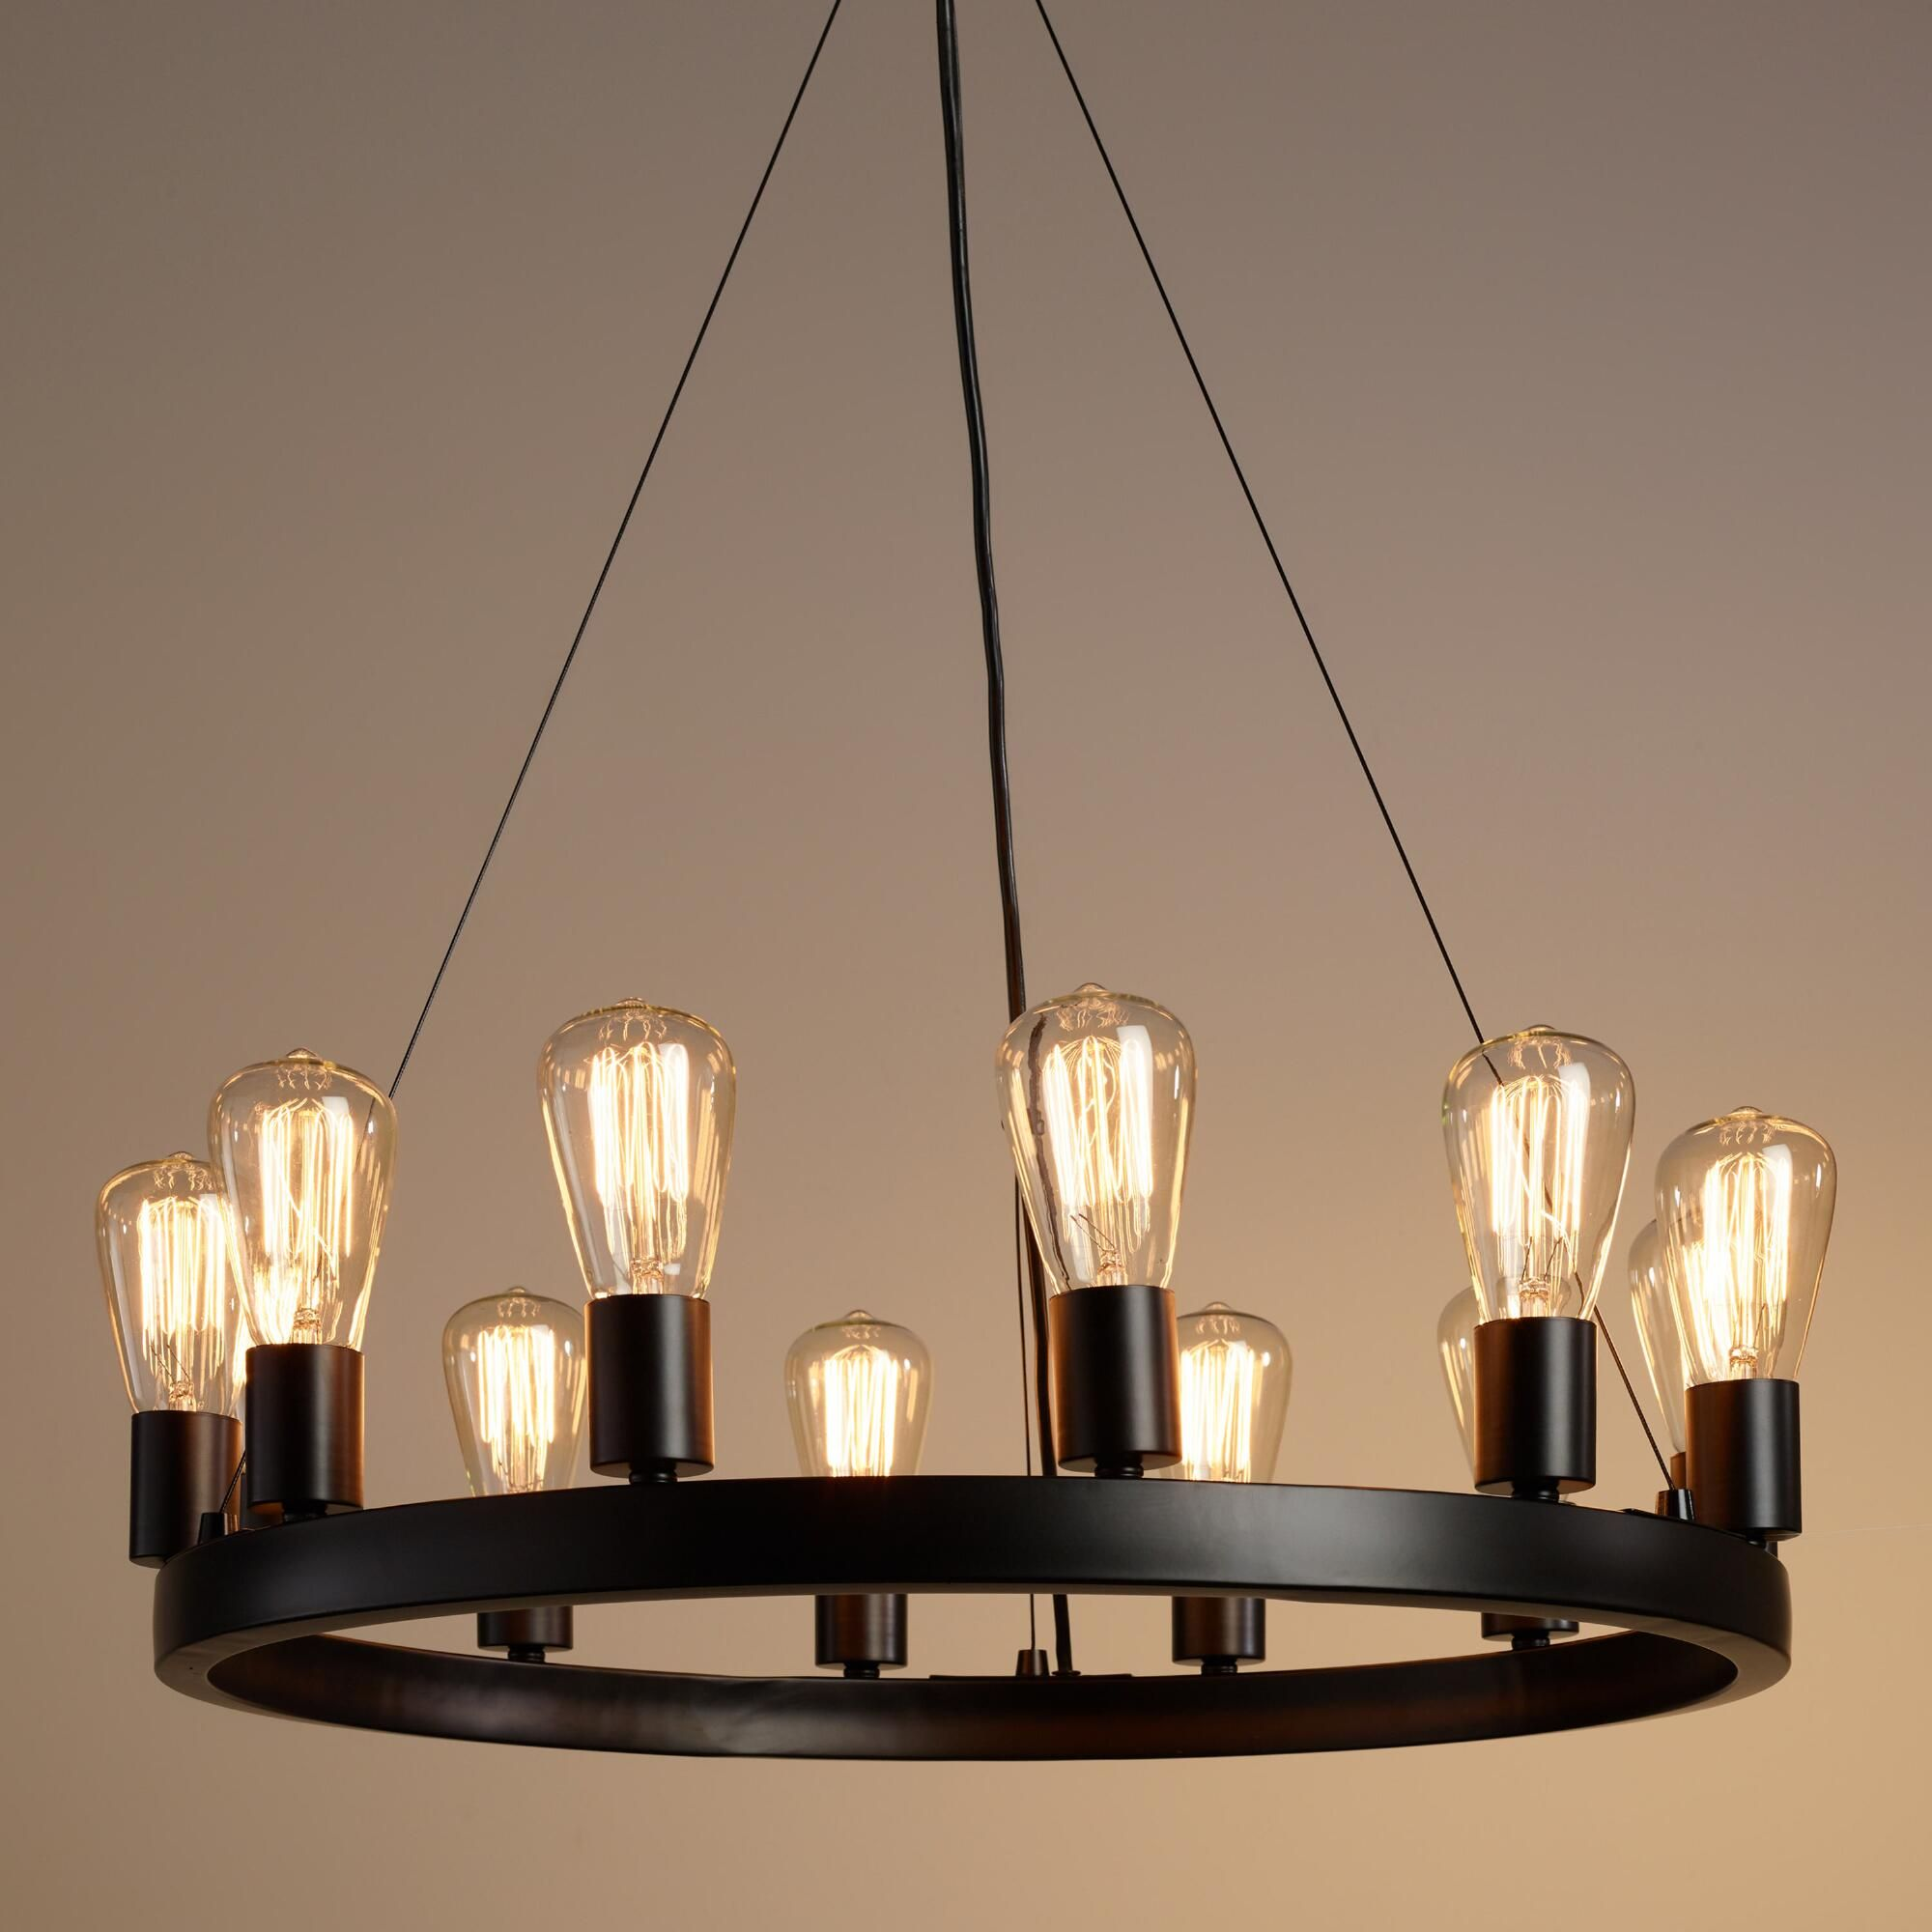 Crafted Of Iron With An Industrial Style Black Finish Our Exclusive Round Chandelier Fills A Room The Rustic Warmth 12 Edison Lights Included For